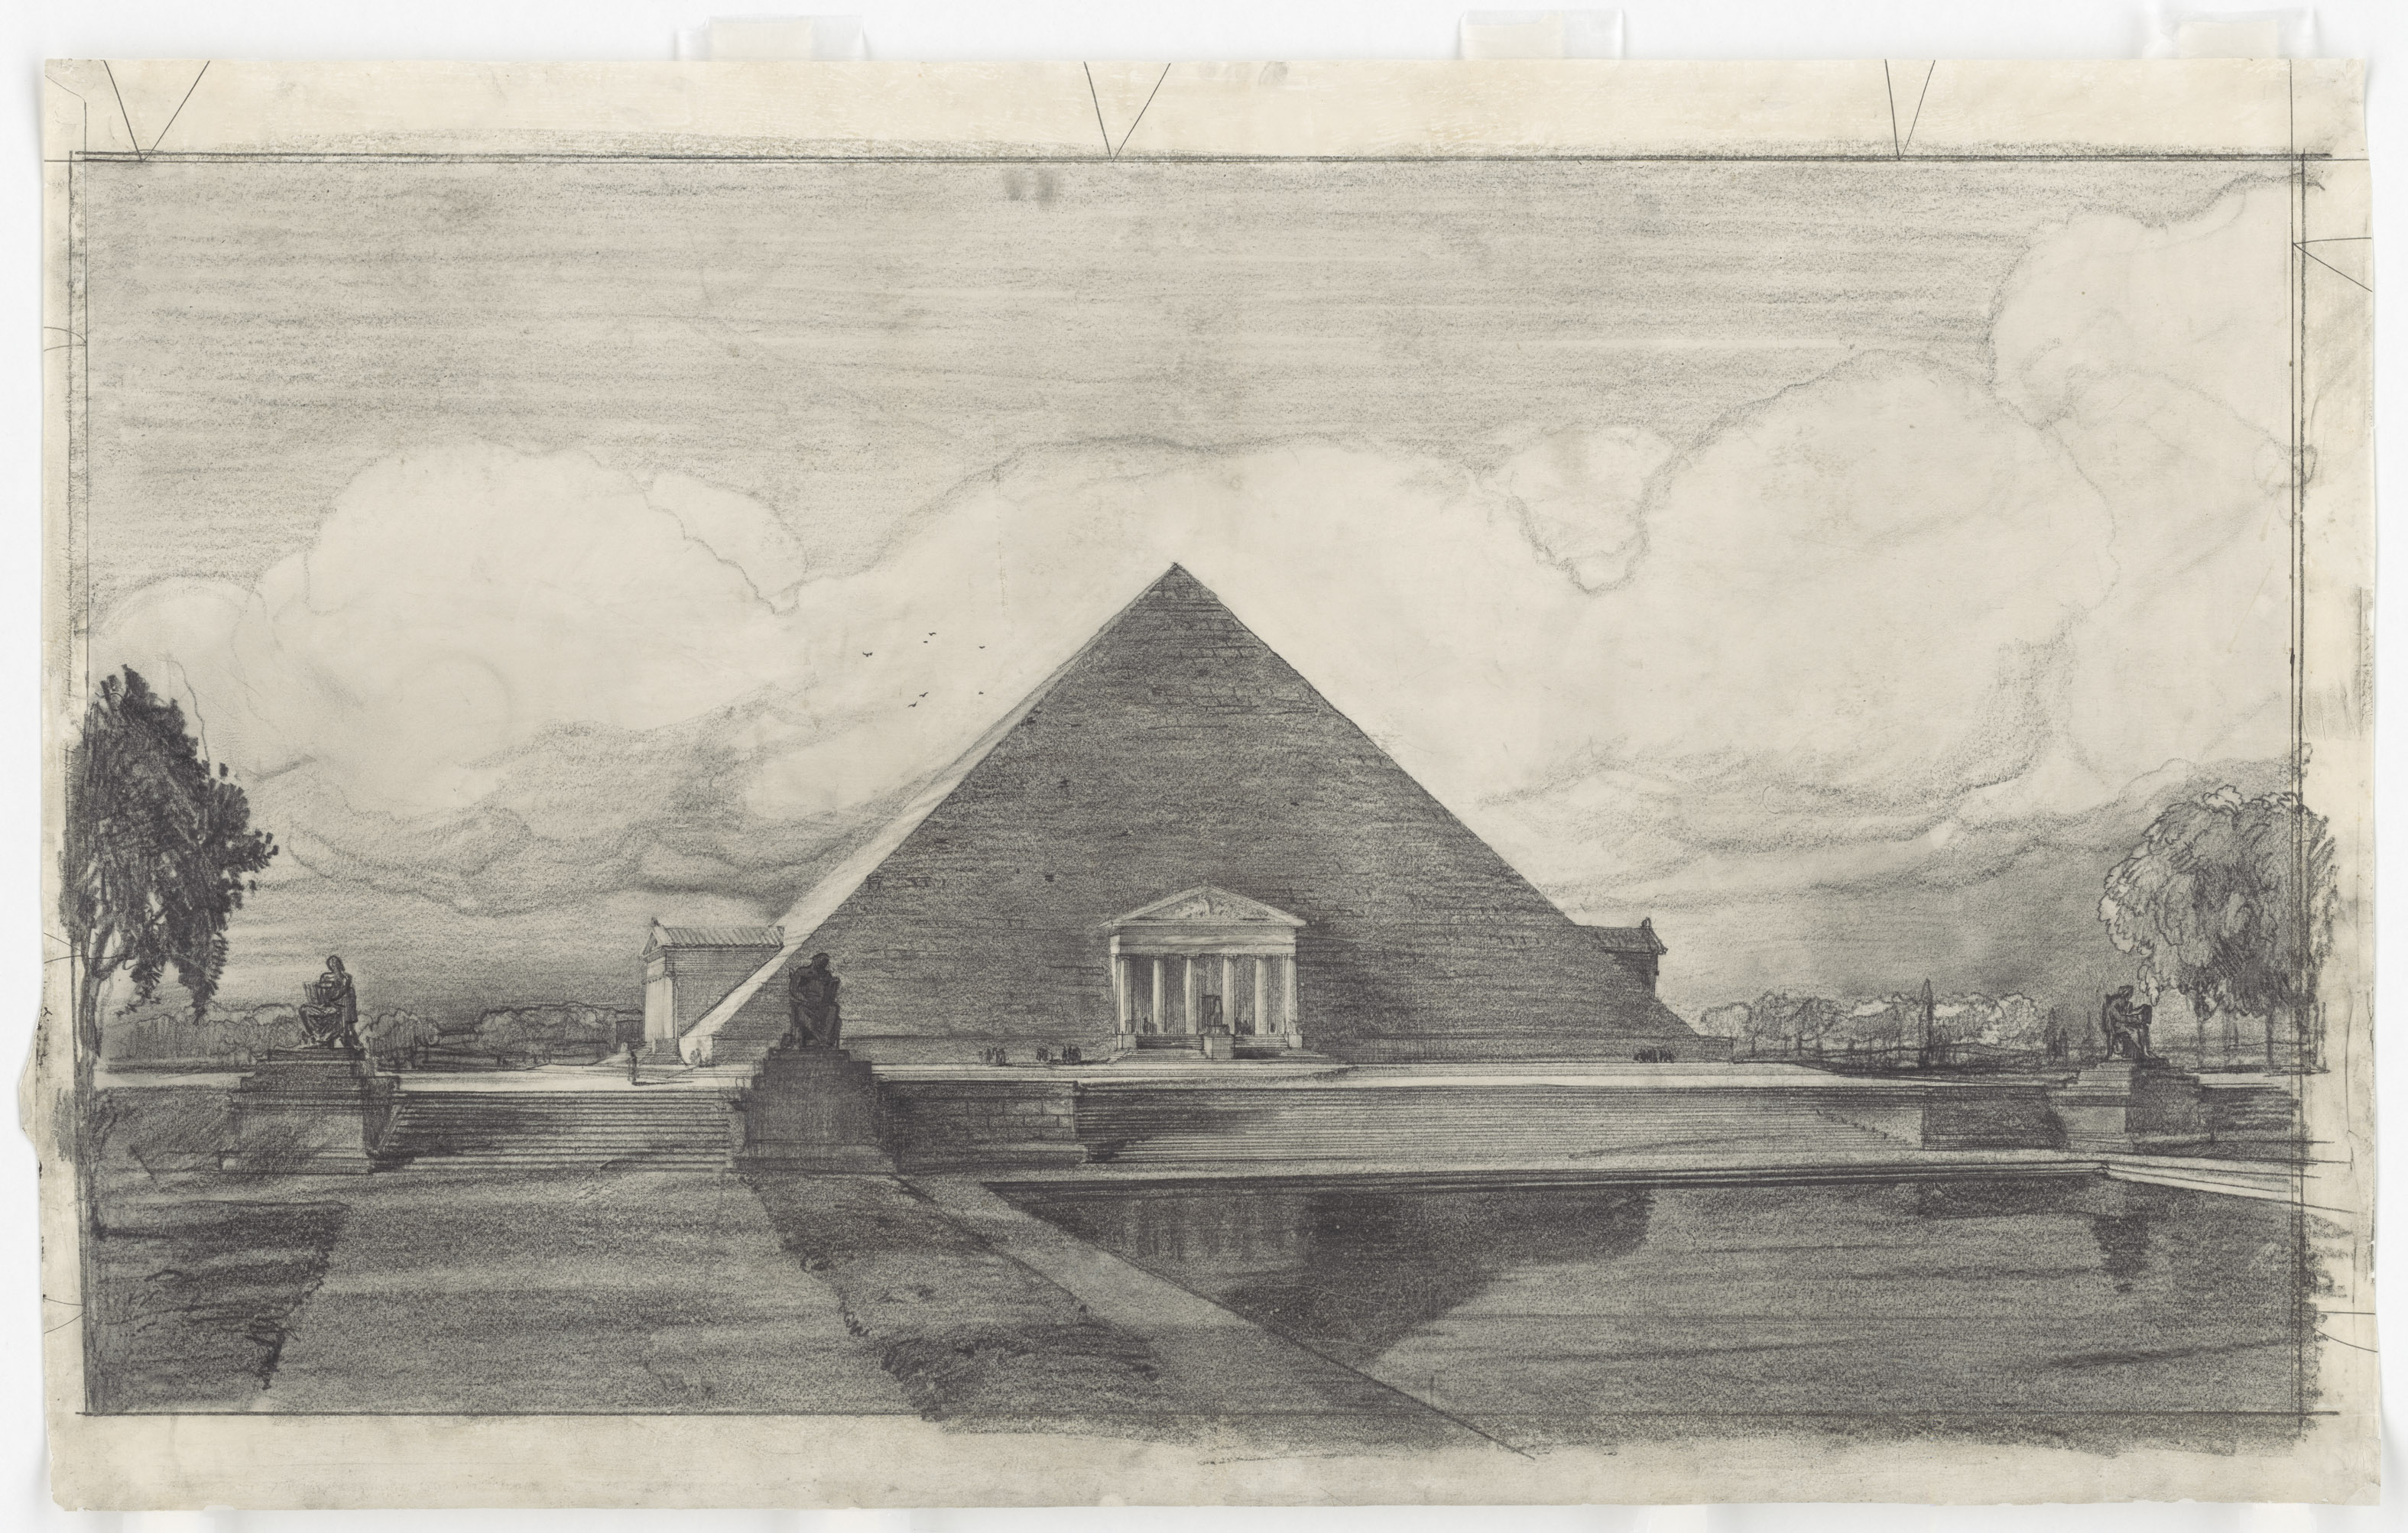 A proposed pyramid for the Lincoln Memorial.